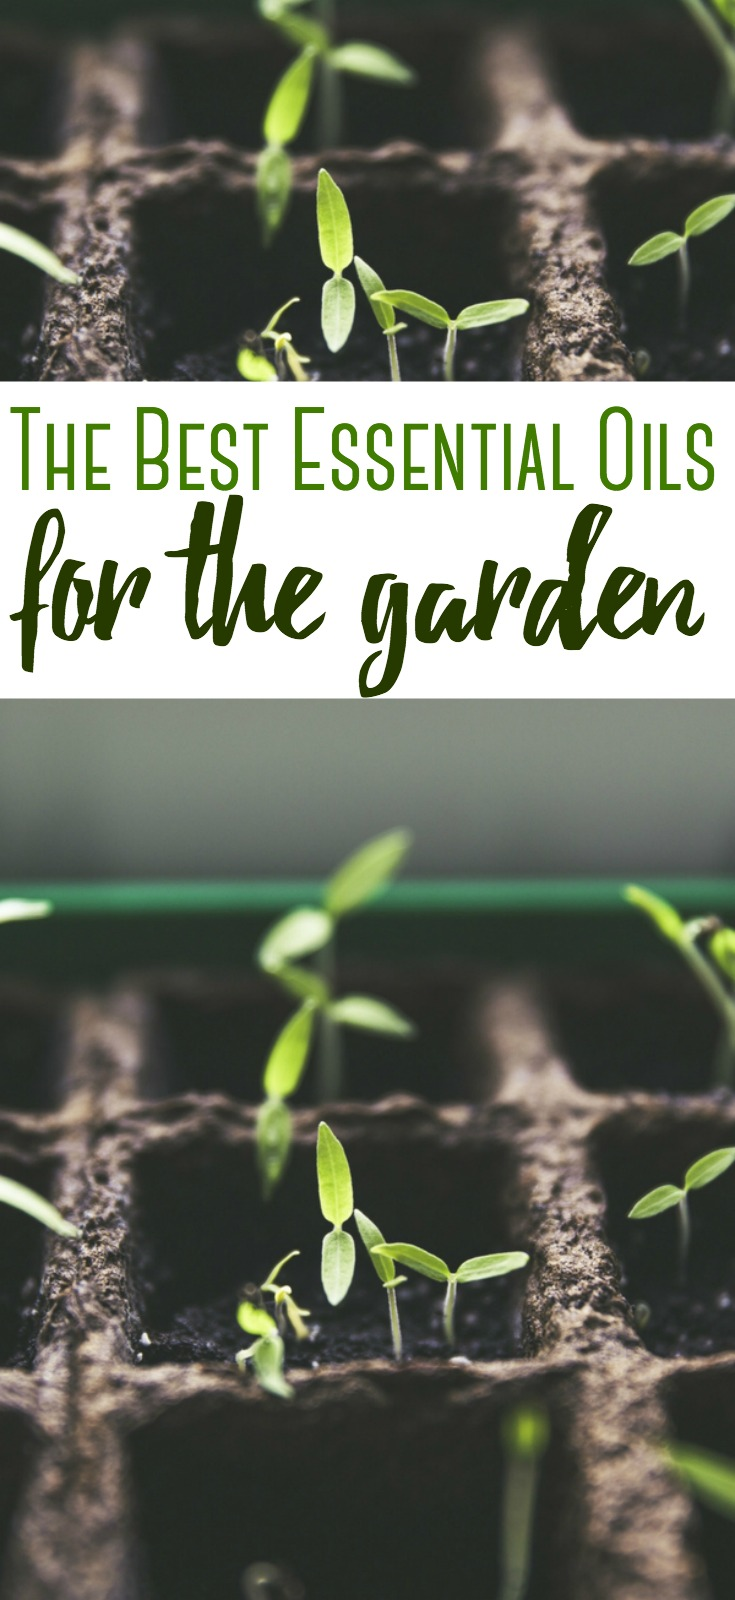 Essential Oils can be tremendously helpful in your homestead - they can help you ward off critters, attract pollinators and provide relief to the gardener. Find out the best essential oils to use in your garden.